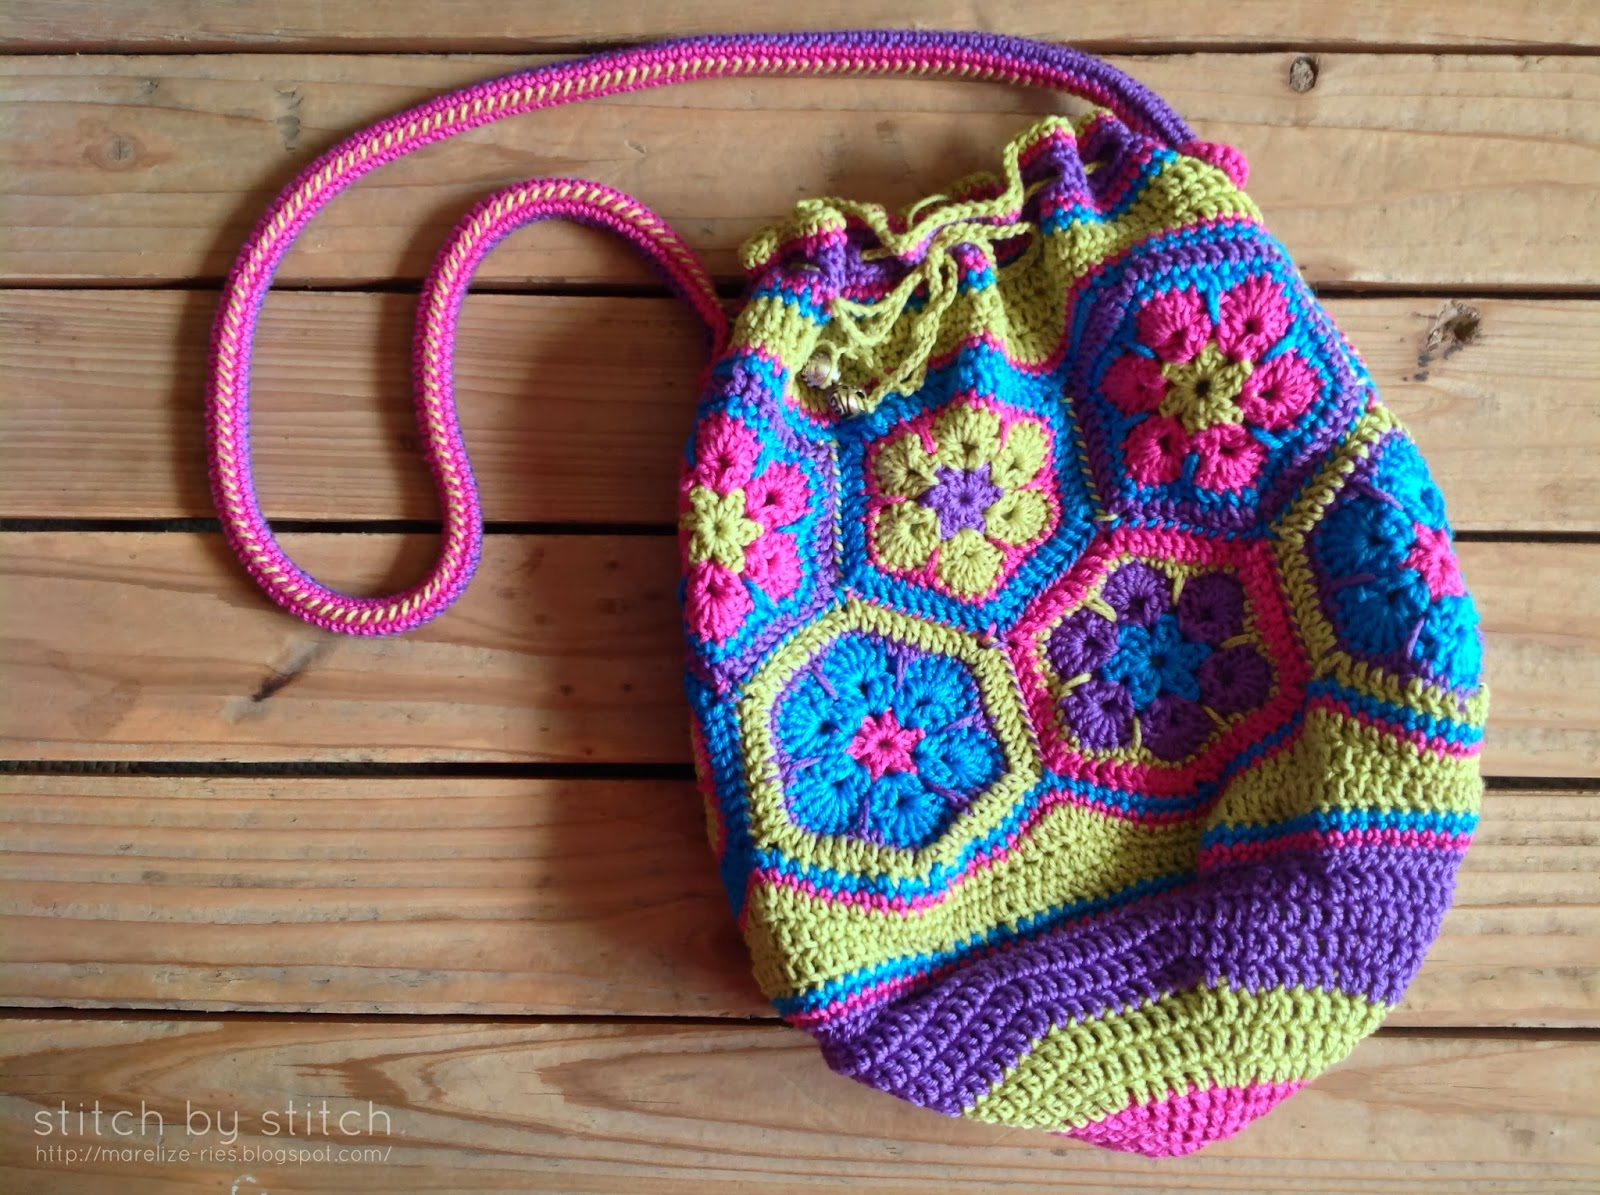 Crochet Bean Bag Tutorial : Stitch by Stitch: African Flower Crochet Bag - Lining Tutorial